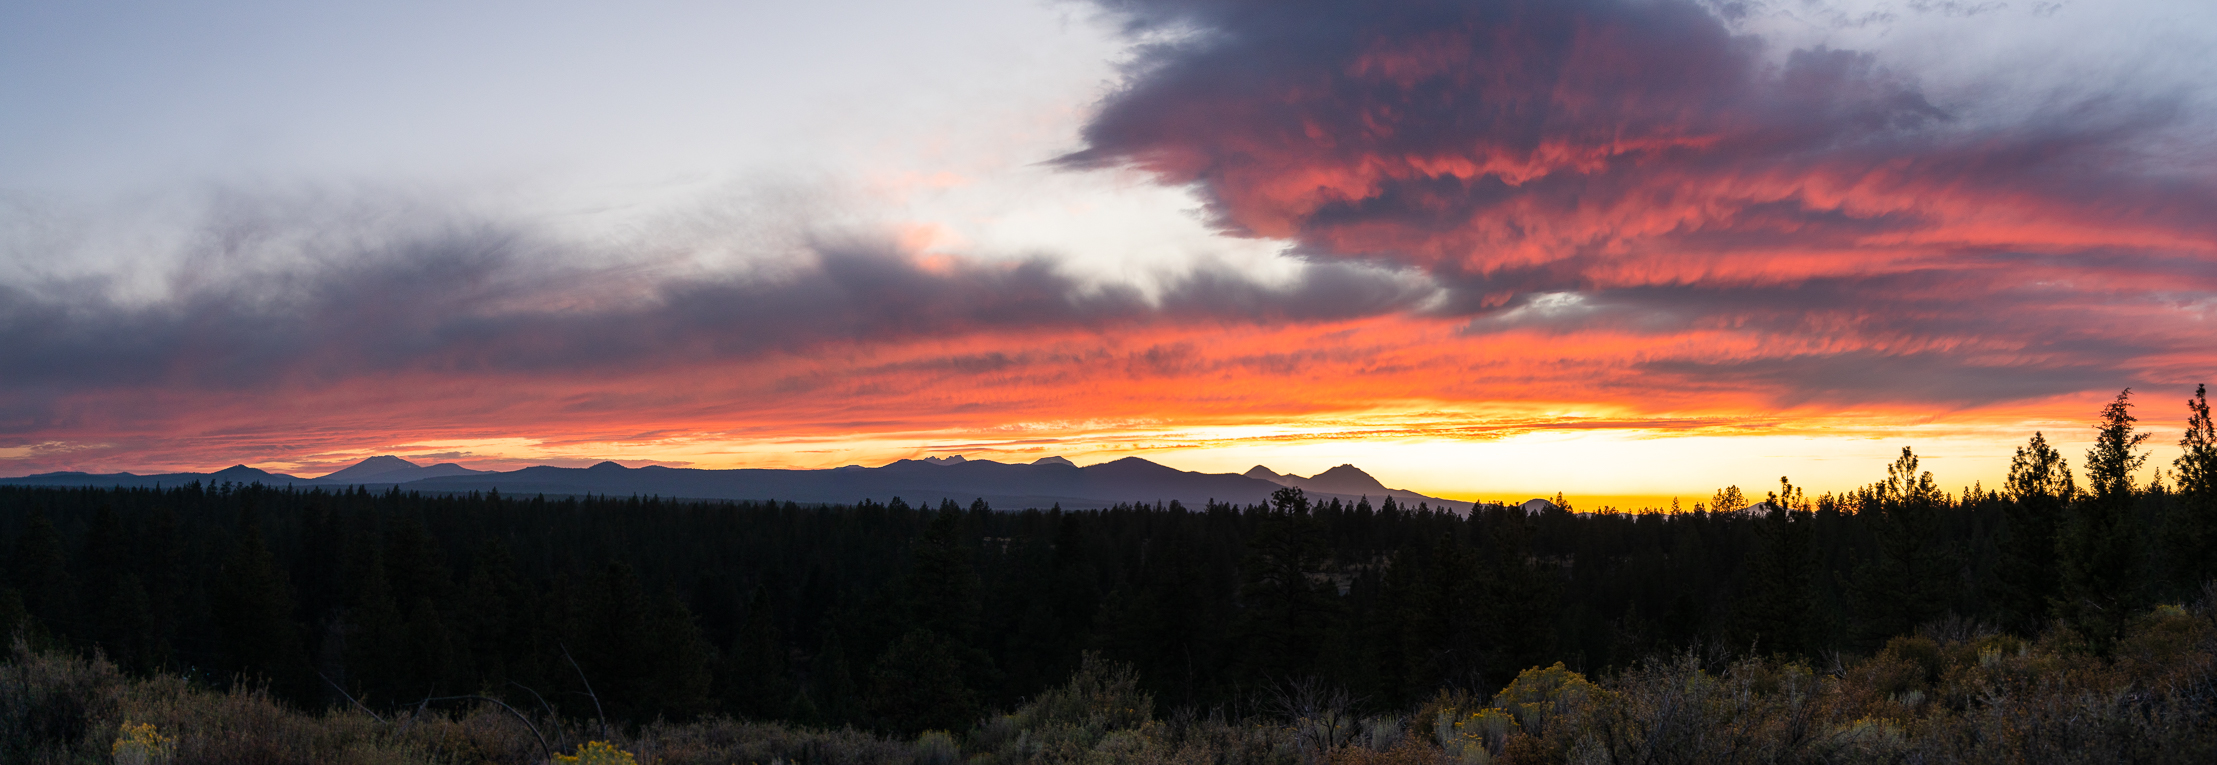 Panorama of Cascade Mountain Wilderness with Broken Top, Three Sisters and other peaks in view at sunset.